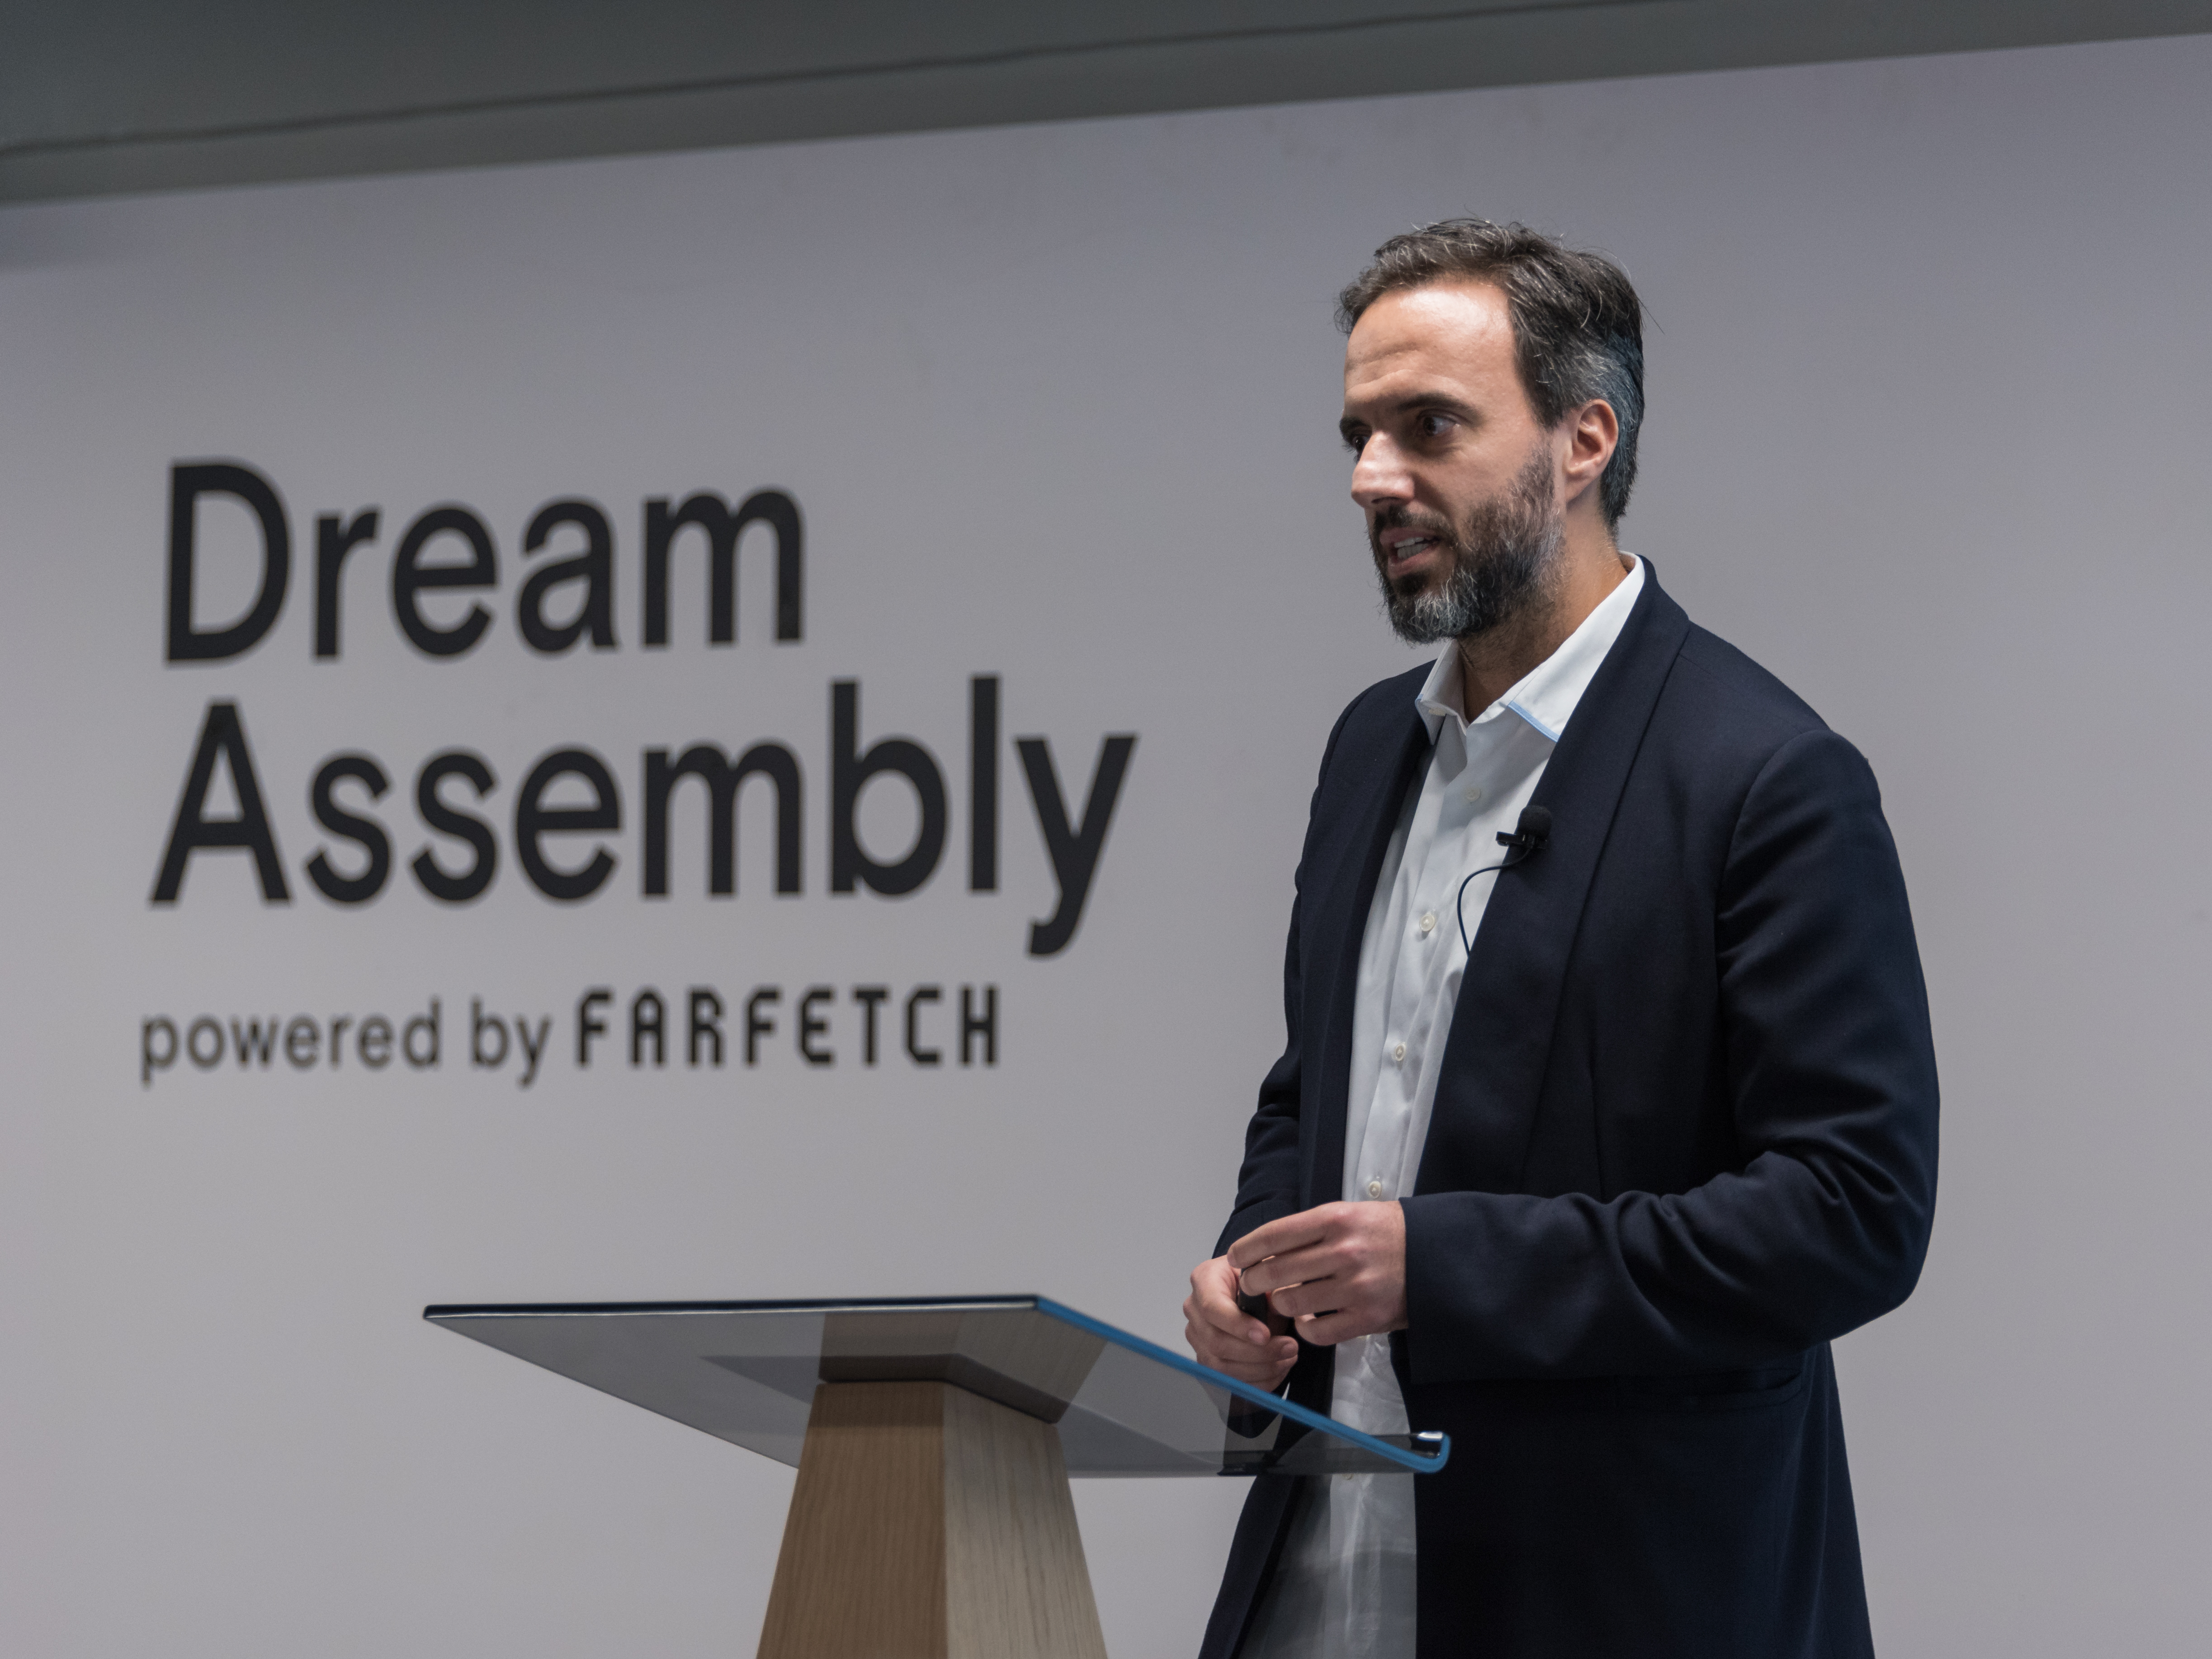 Farfetch launches technology accelerator: Dream Assembly - Image